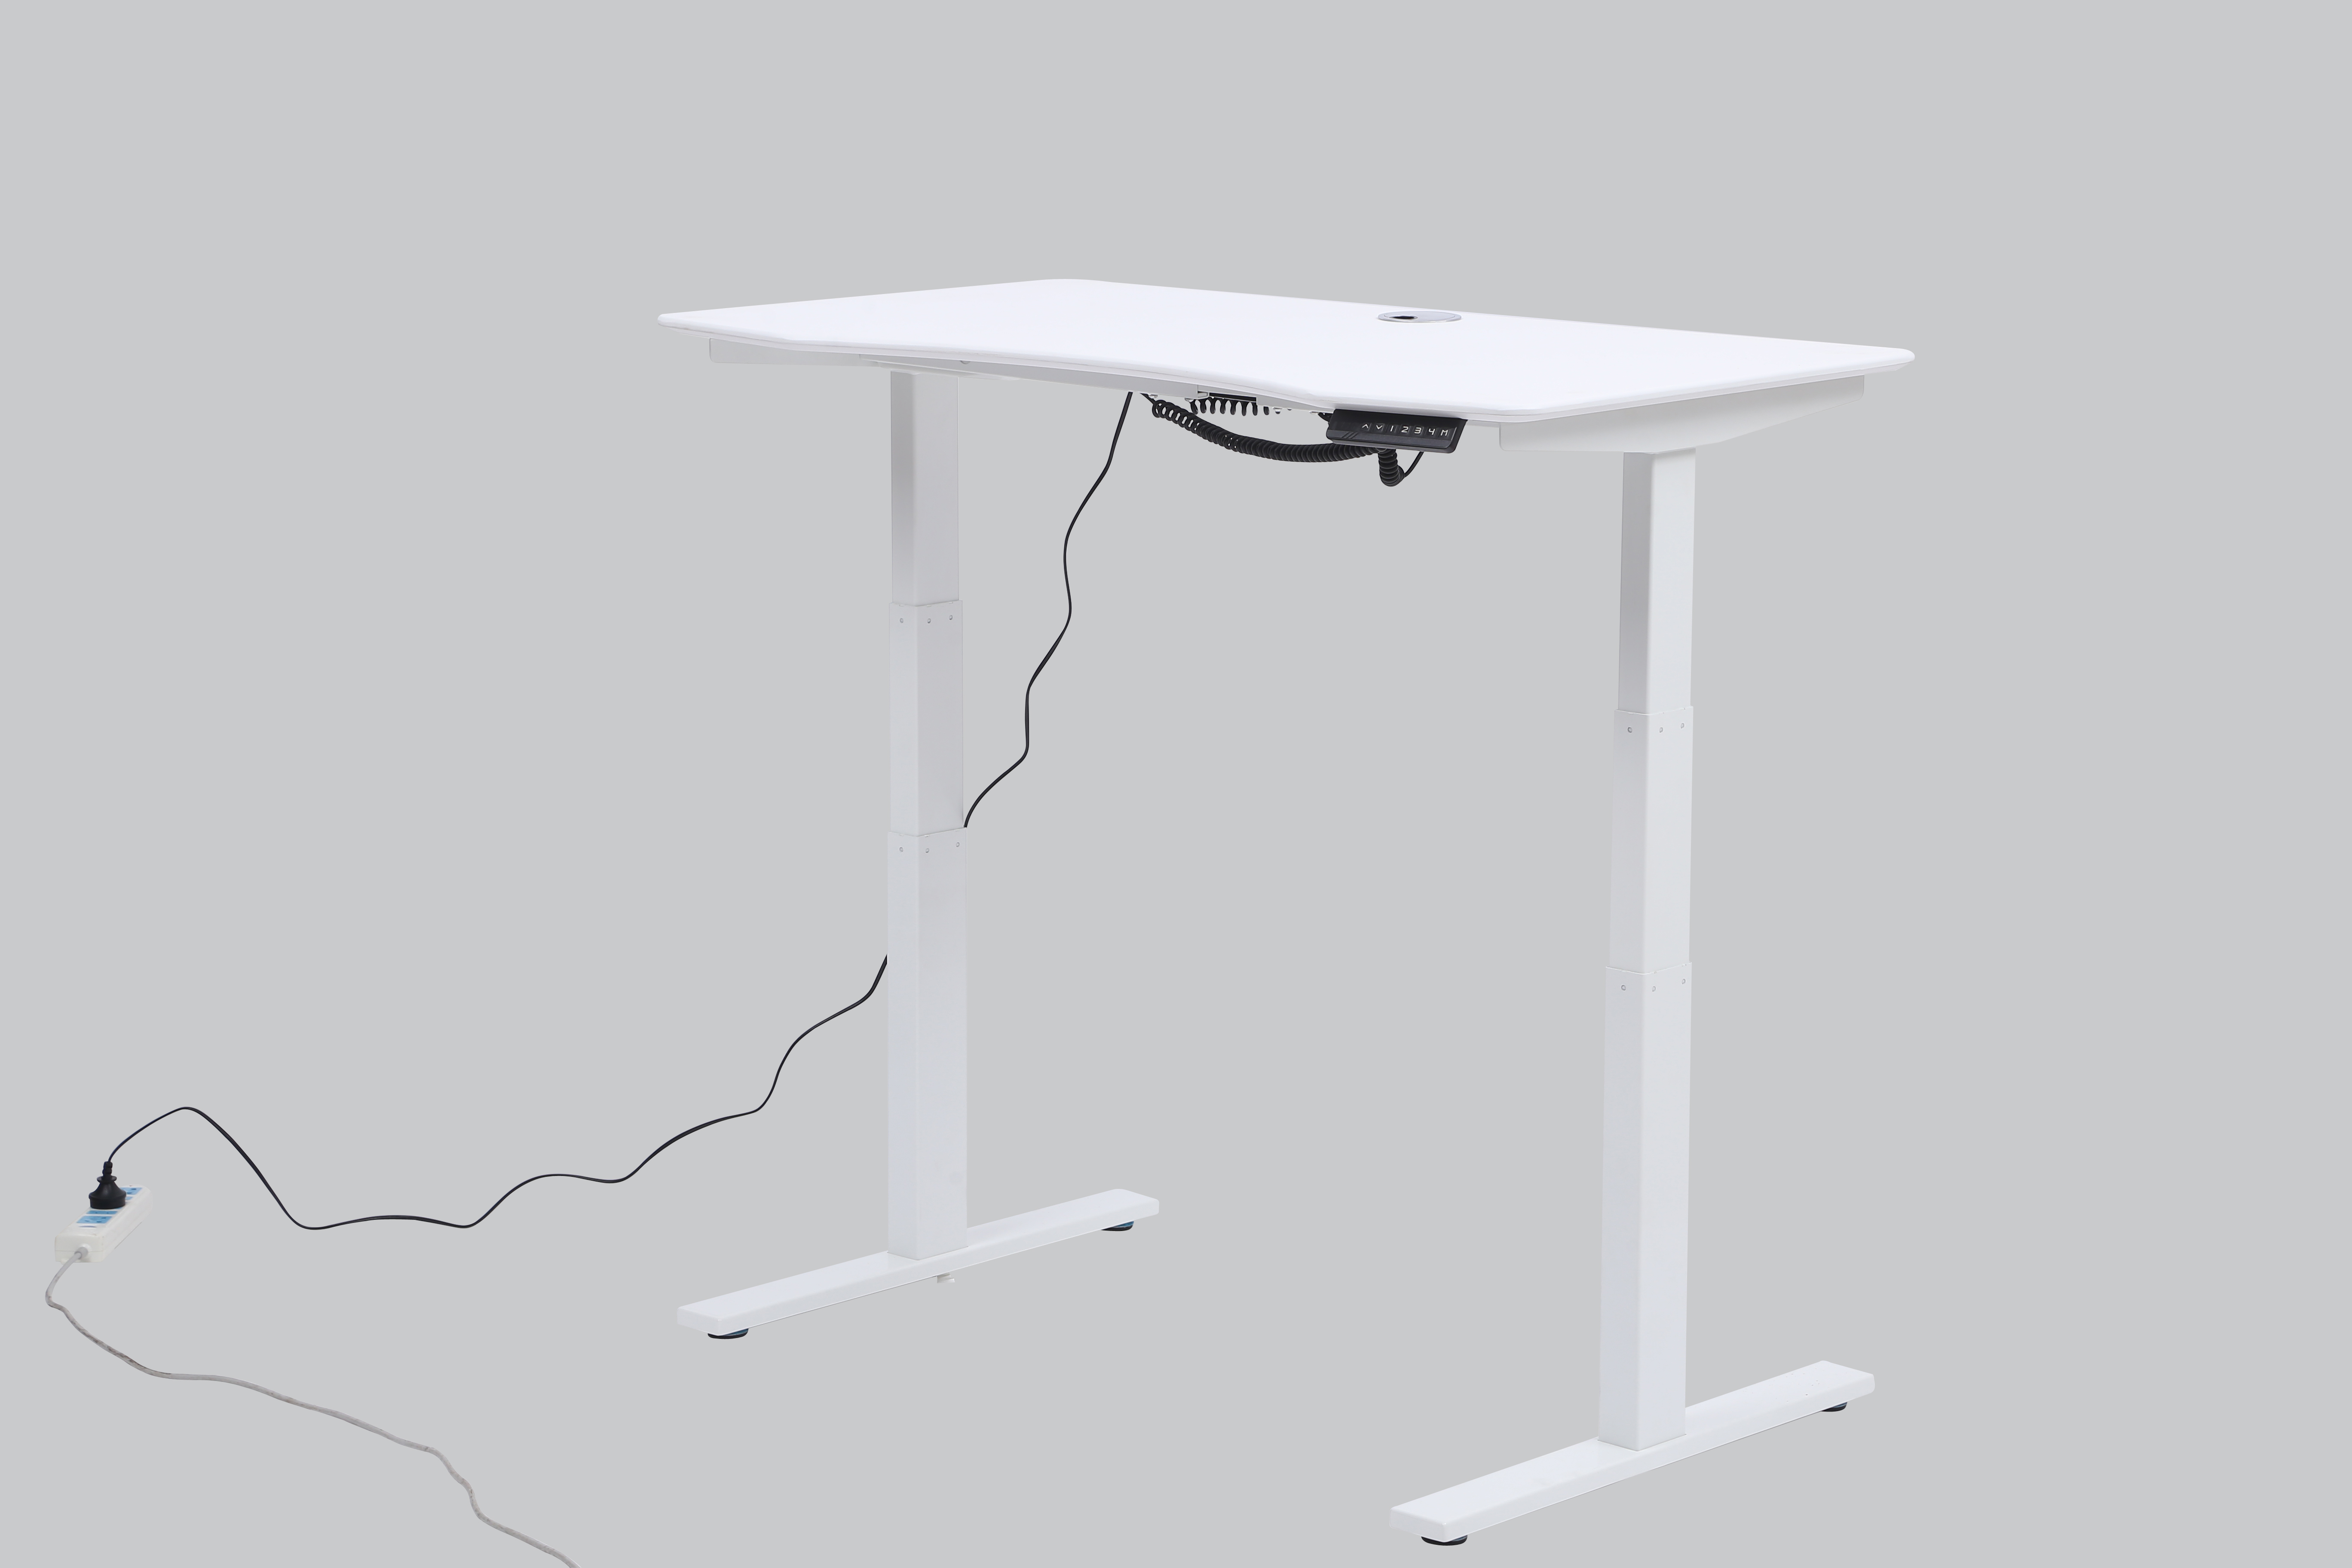 SMART LIFT DESK ASED desk with 3 lifting segments and 2 motors